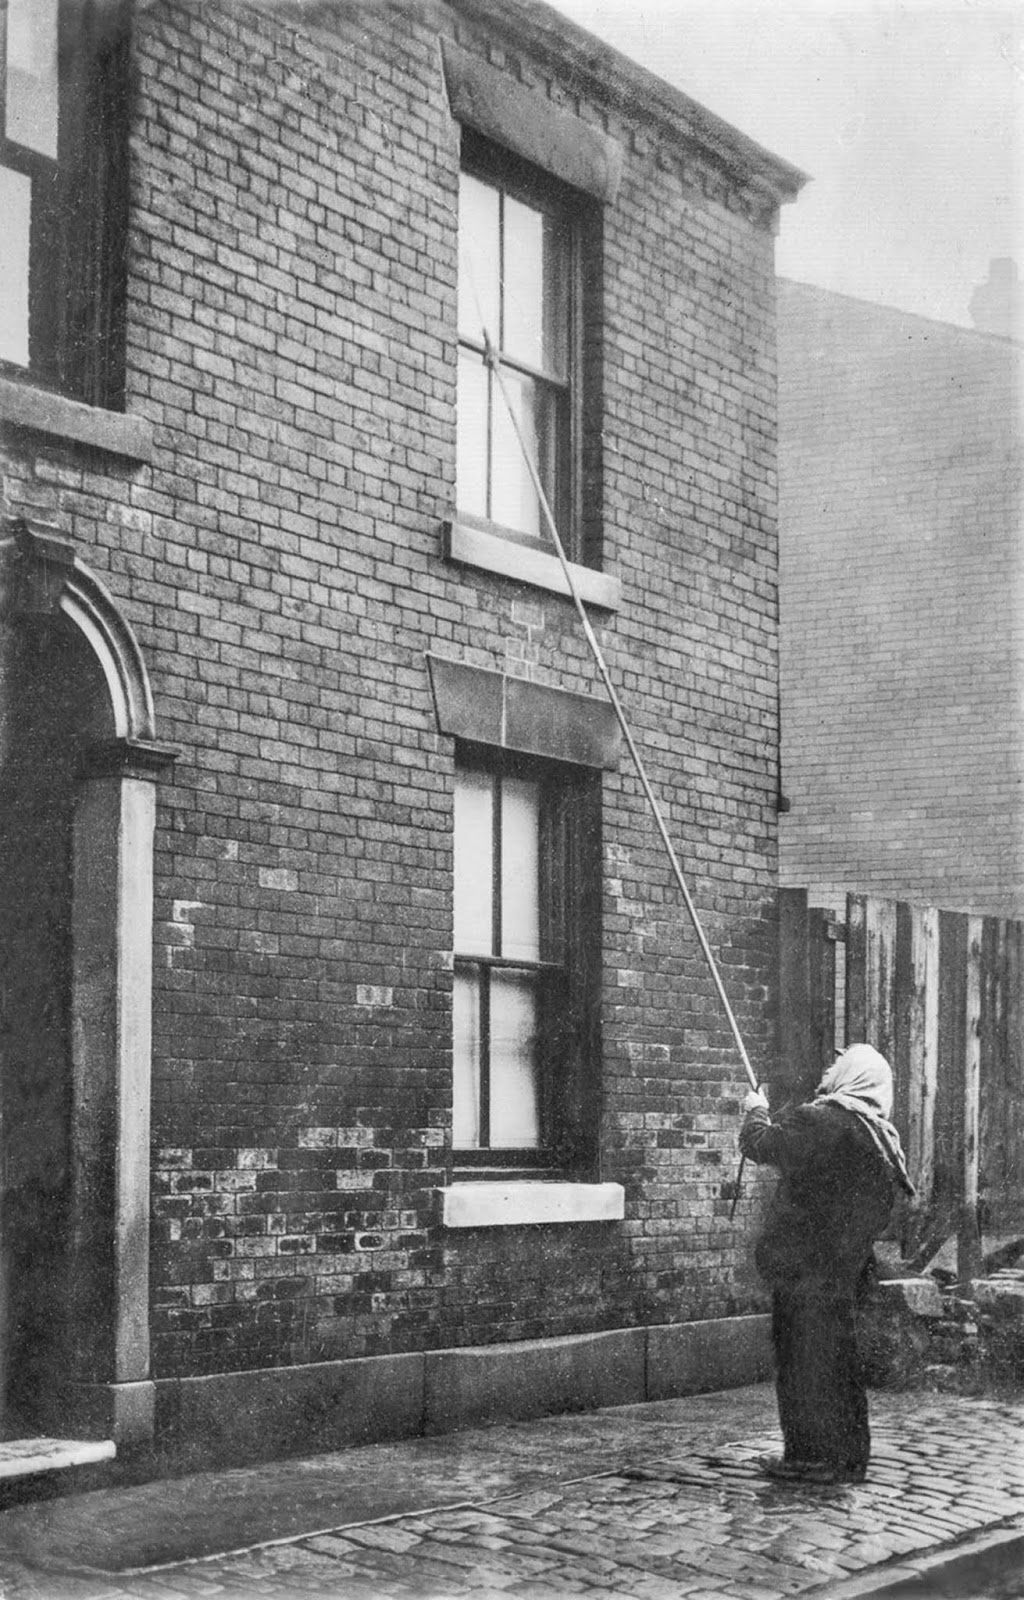 A knocker-up rouses a client in Lancashire. c. 1900.